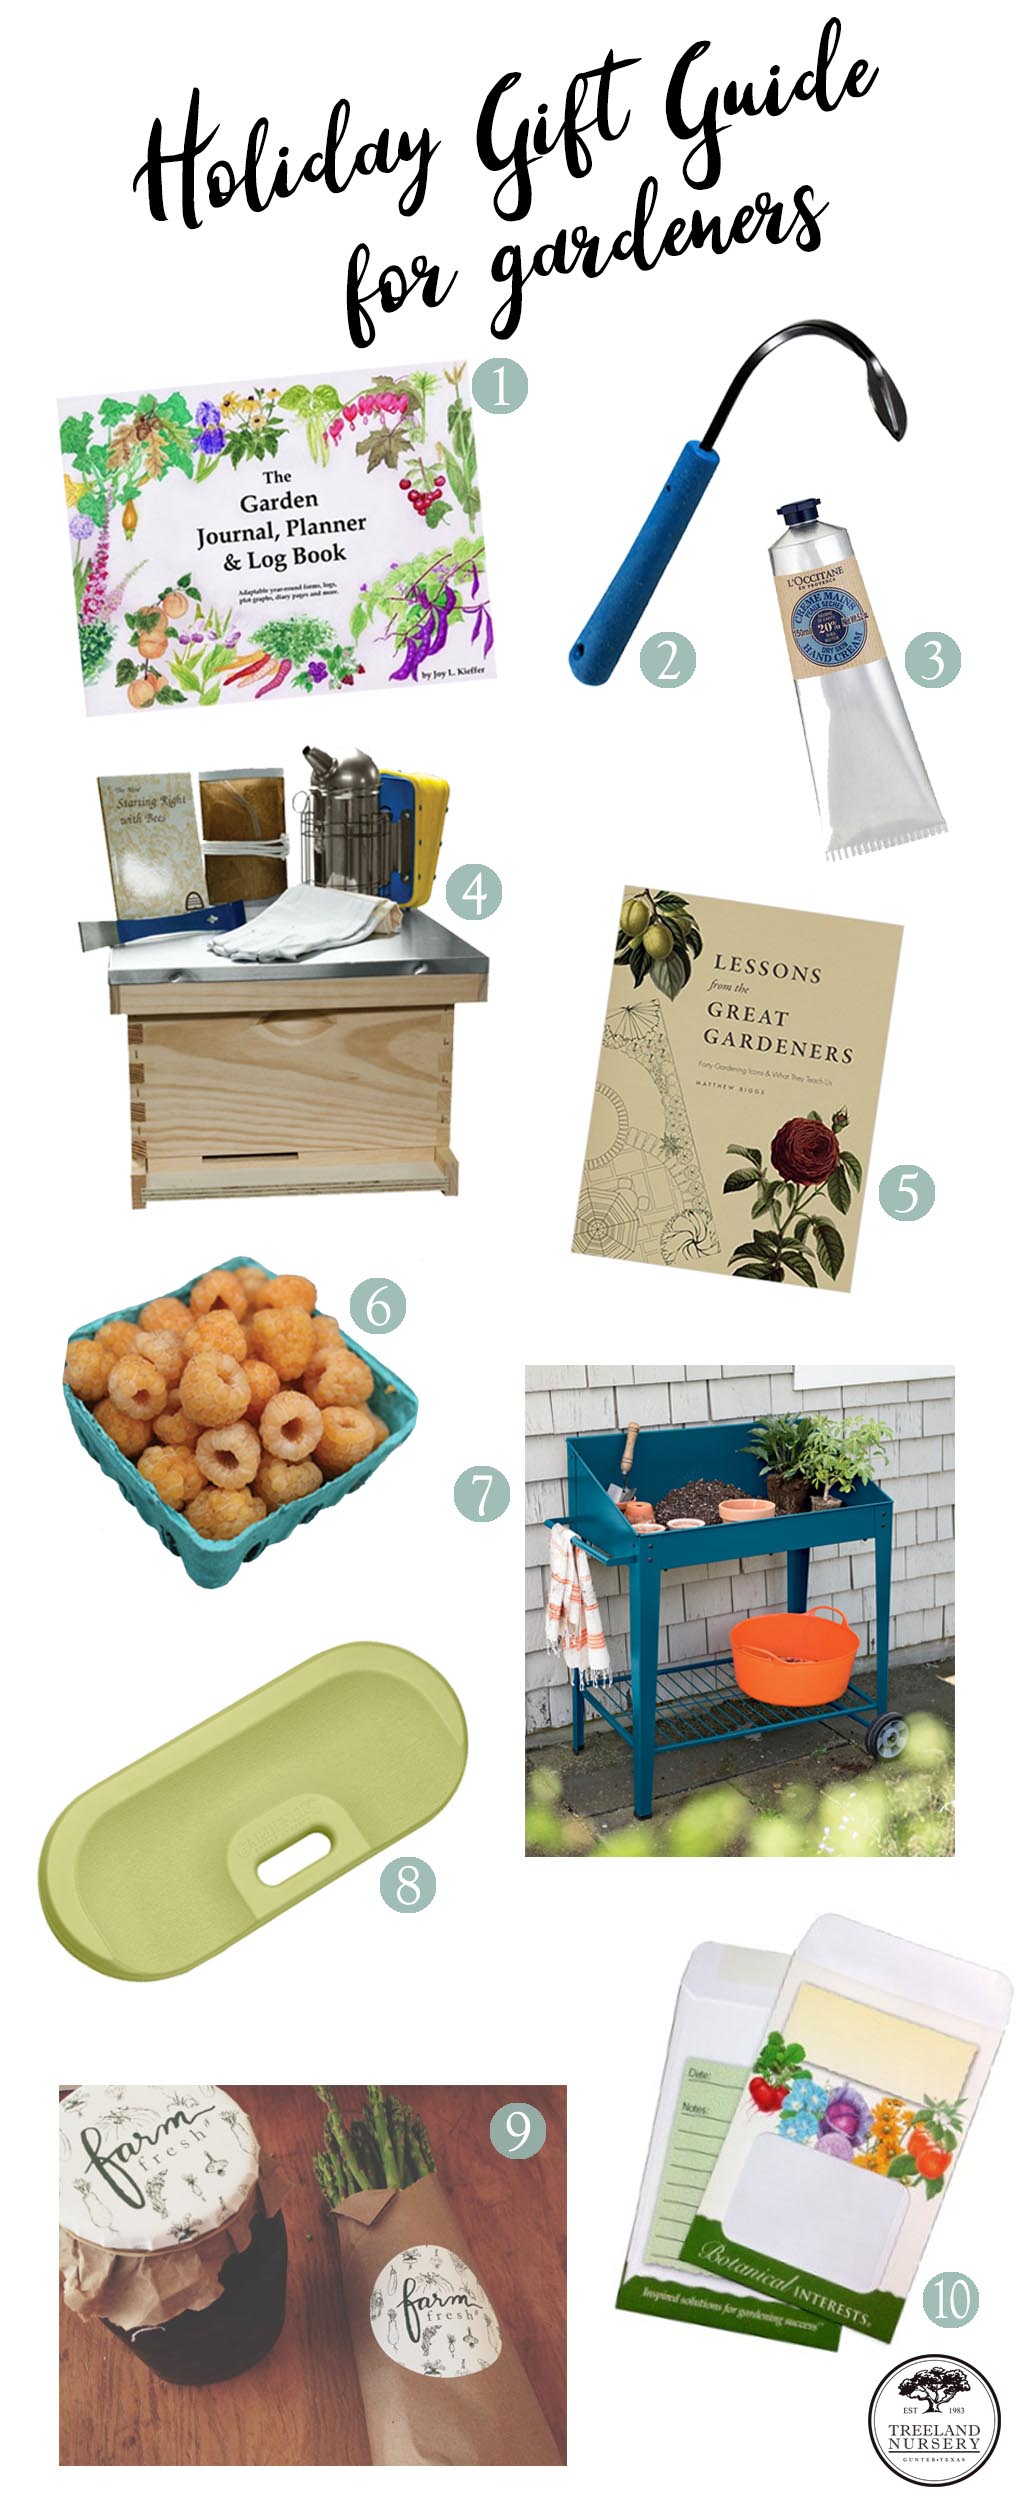 Holiday Gift Guide For Gardeners Sugar And Sap